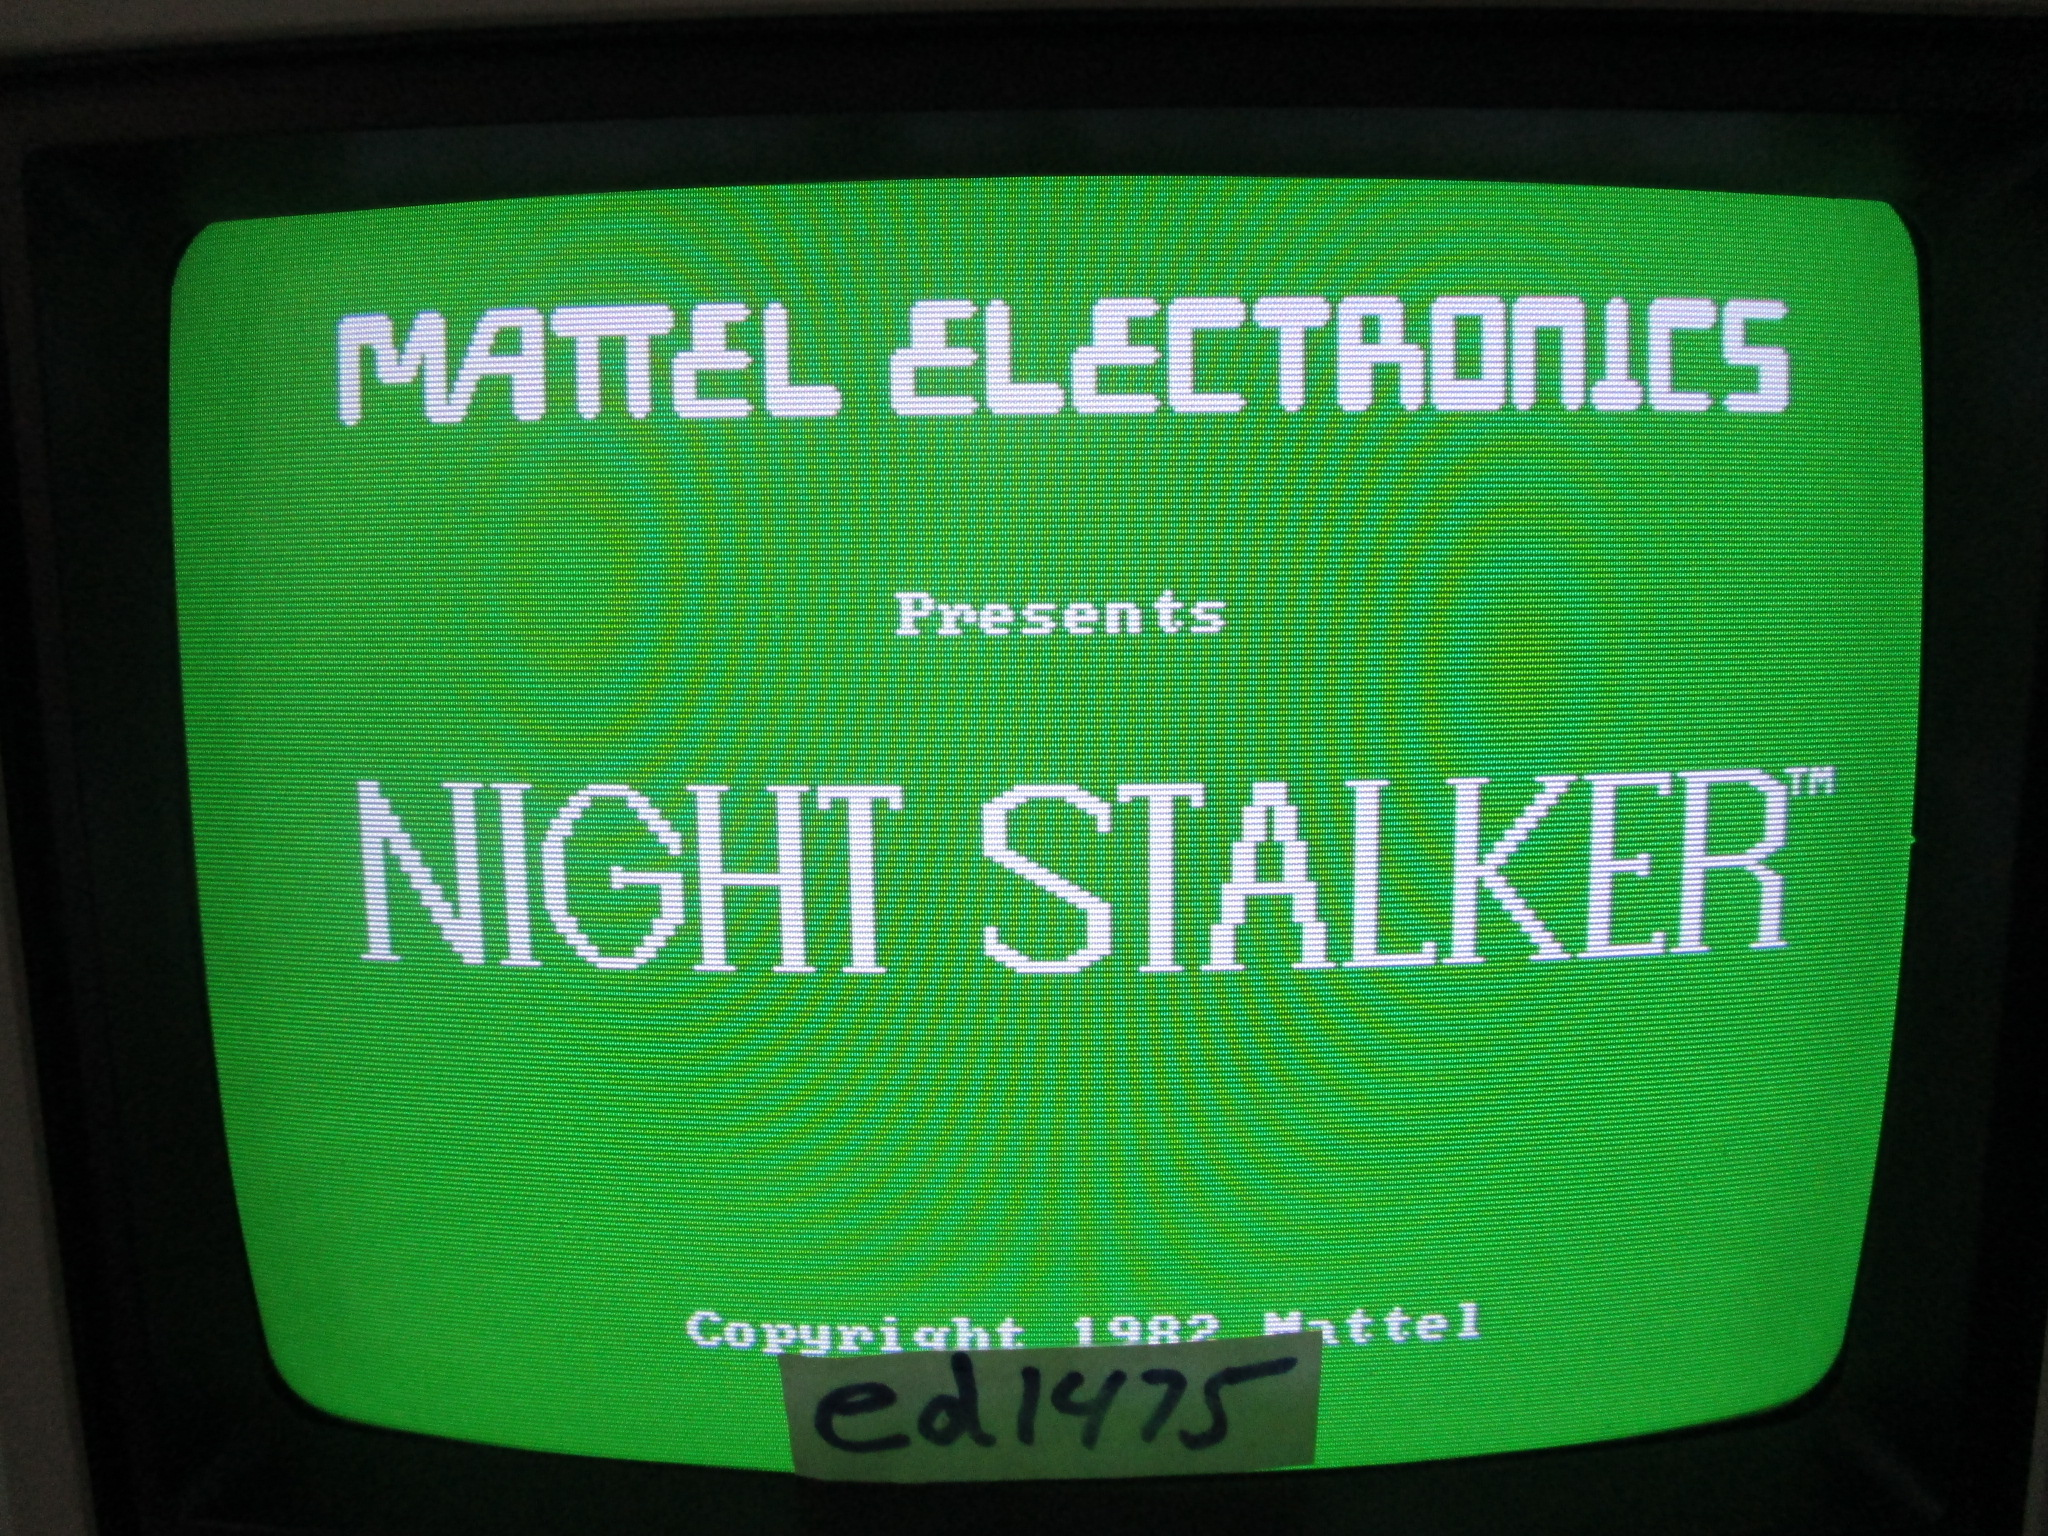 ed1475: Night Stalker [Skill Level 3] (PC) 5,700 points on 2015-02-04 19:43:40